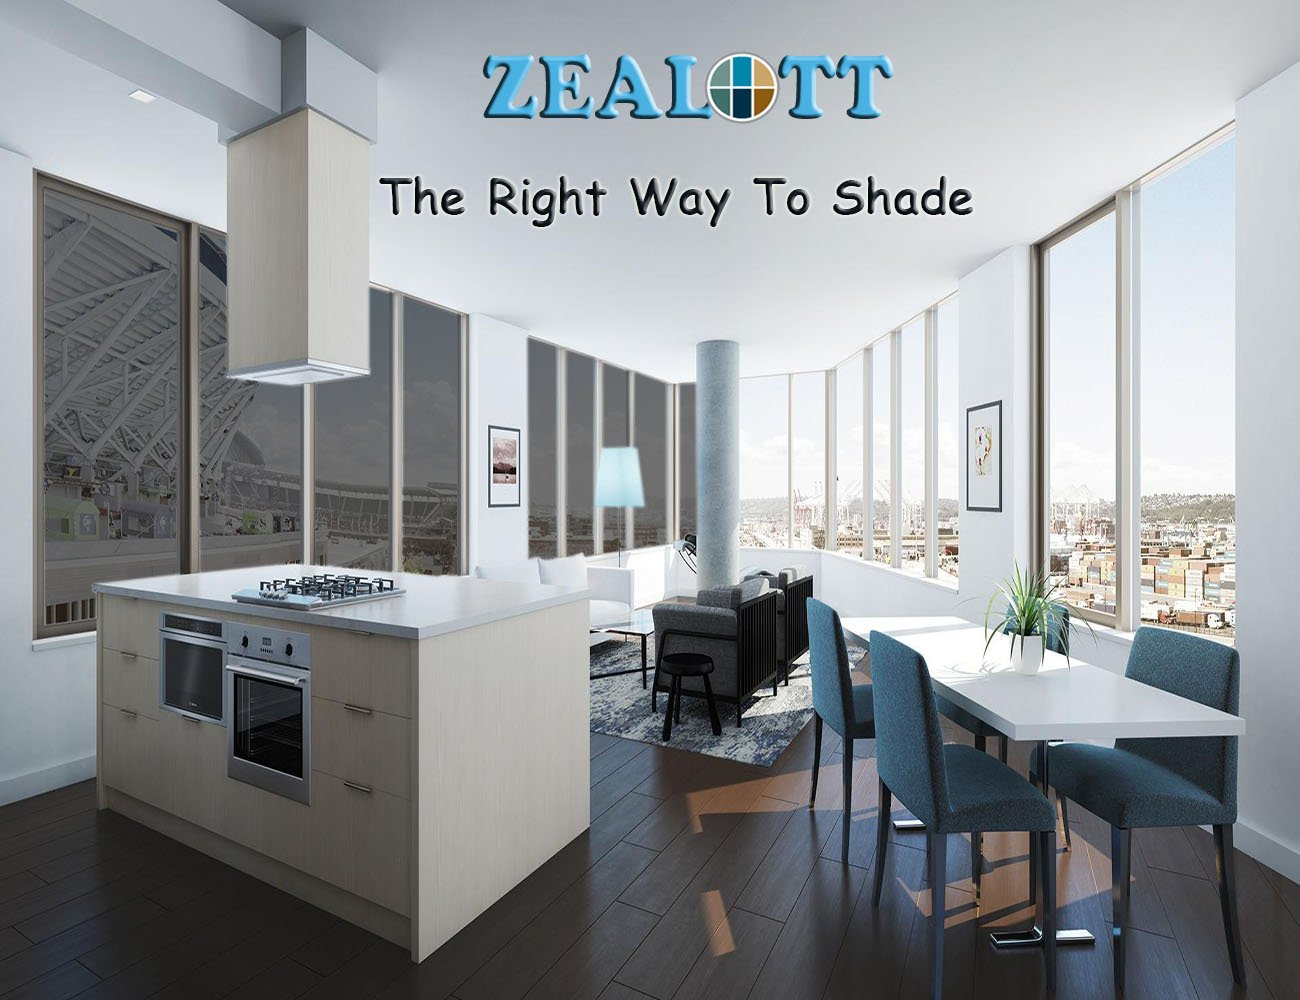 ZEALOTT Heat Rejection Window Glass Tinting Film for Residential and Commercial Uses, Sun Blocker, Solar Guard, 17.7-Inch by 6.5-Feet (45cm x 2m), Light Black by ZEALOTT (Image #2)